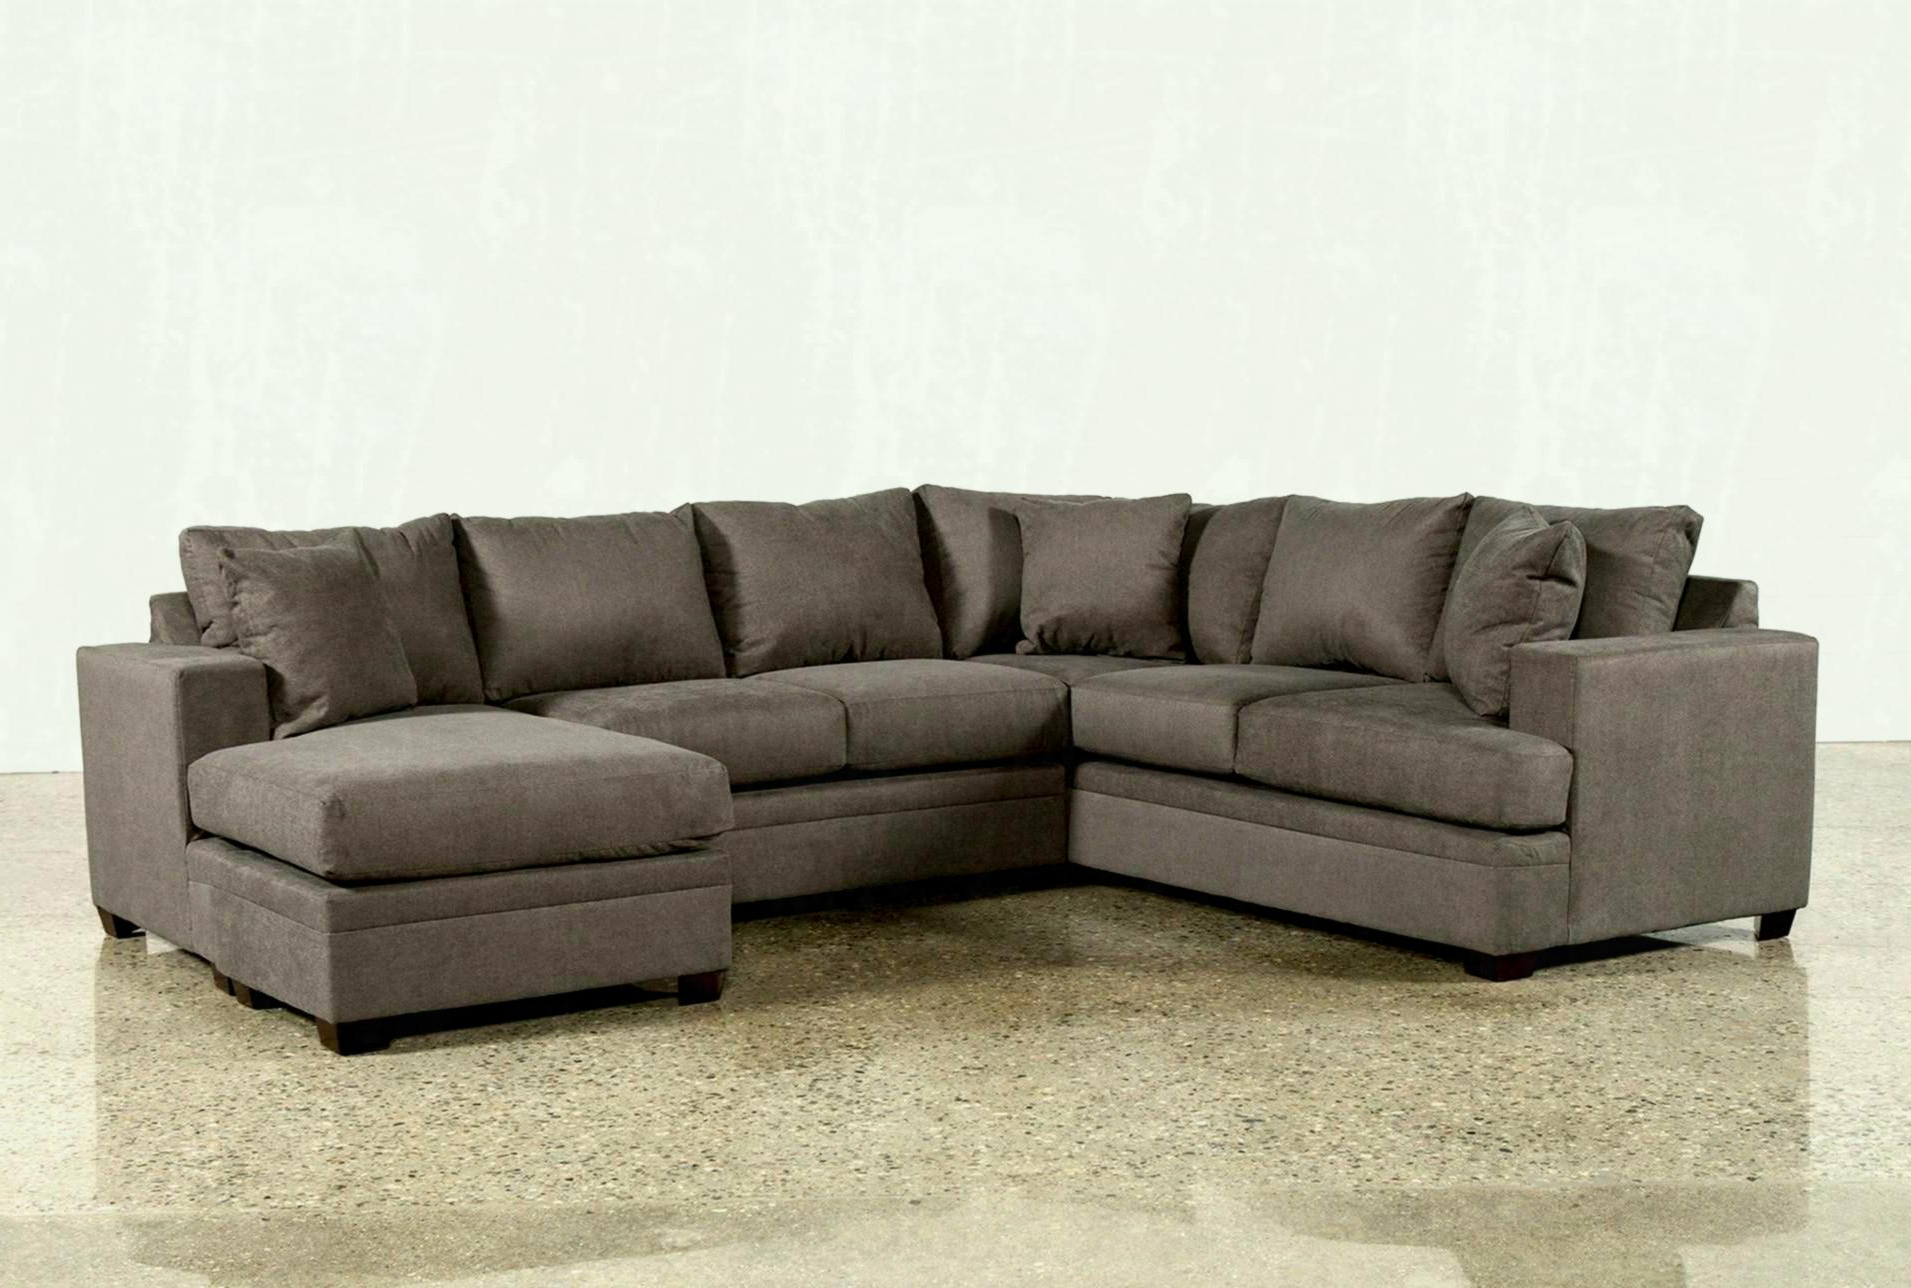 Most Recent Lucy Grey 2 Piece Sectionals With Raf Chaise For Added To Cart Kerri Piece Sectional W Raf Chaise Living Spaces (View 13 of 20)